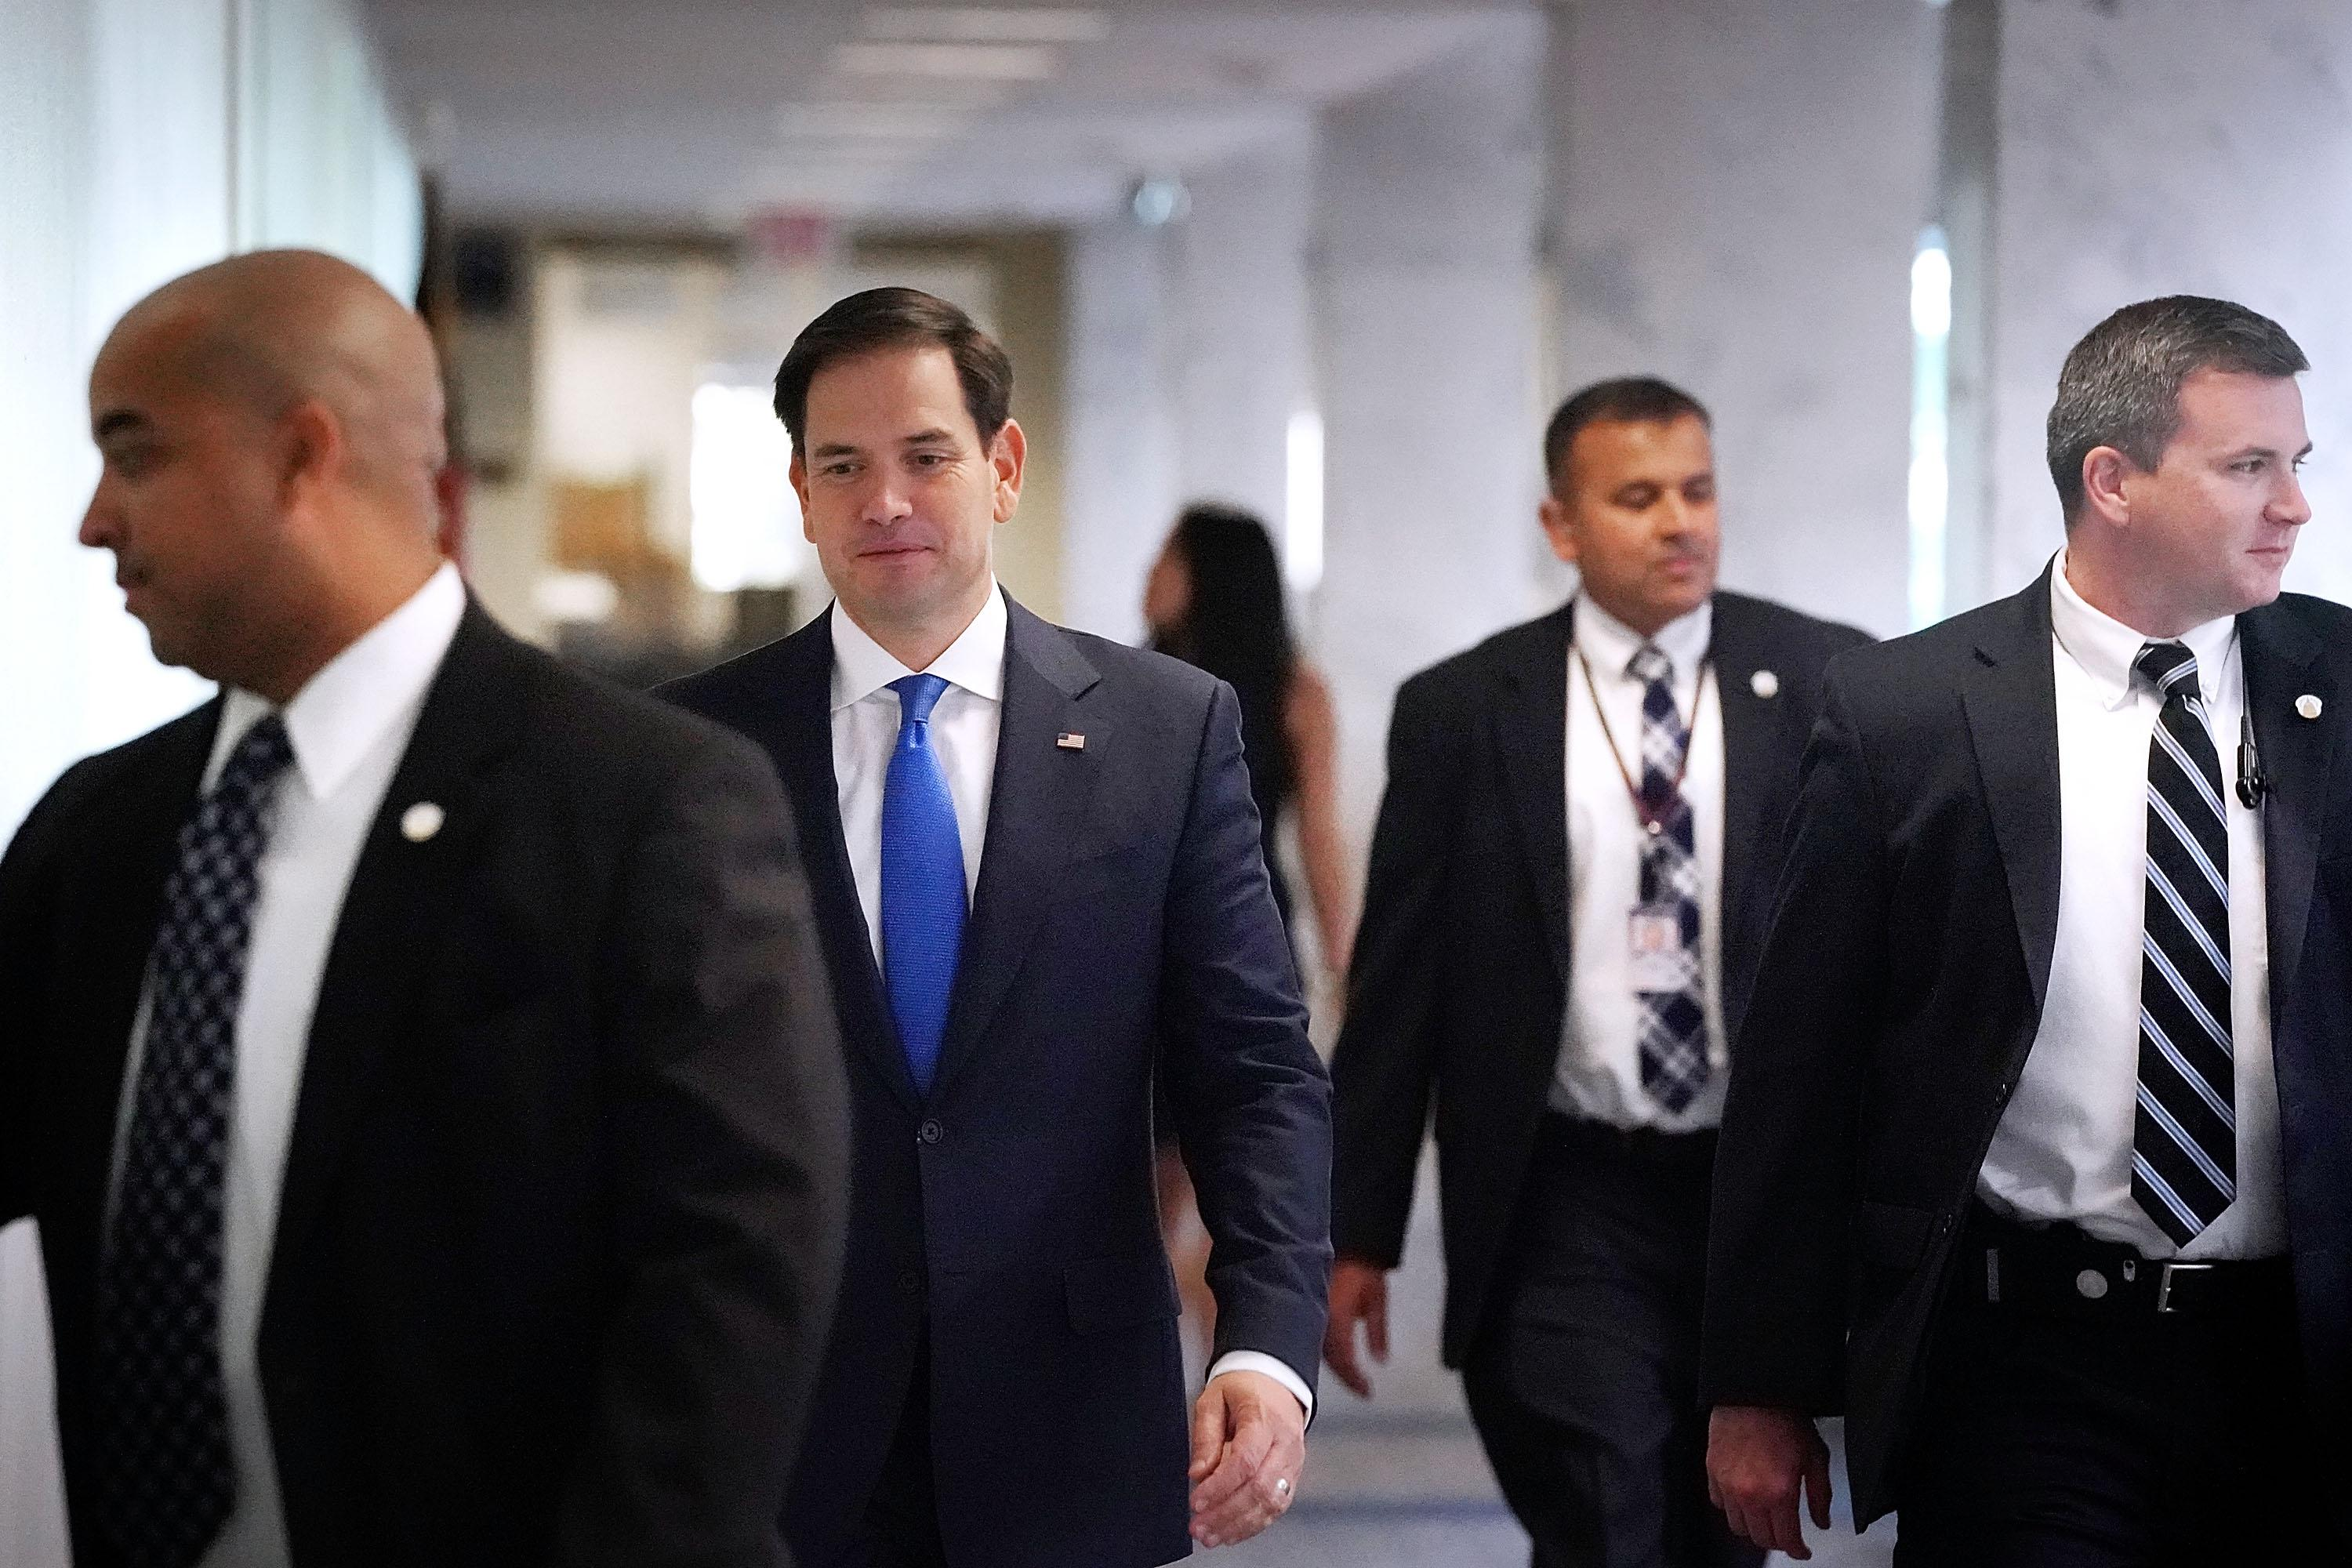 WASHINGTON, DC - OCTOBER 26:  Senate Intelligence Committee member Sen. Marco Rubio (R-FL) (2nd L) is flanked by plain-clothed U.S. Capitol Police as he arrives for a classified hearing at the Hart Senate Office Building on Capitol Hill October 26, 2017 in Washington, DC. The committee advanced legislation that would reauthorize Section 702 of the FISA Amendments Act, which enables the government to collect foreign intelligence on U.S. soil.  (Photo by Chip Somodevilla/Getty Images)